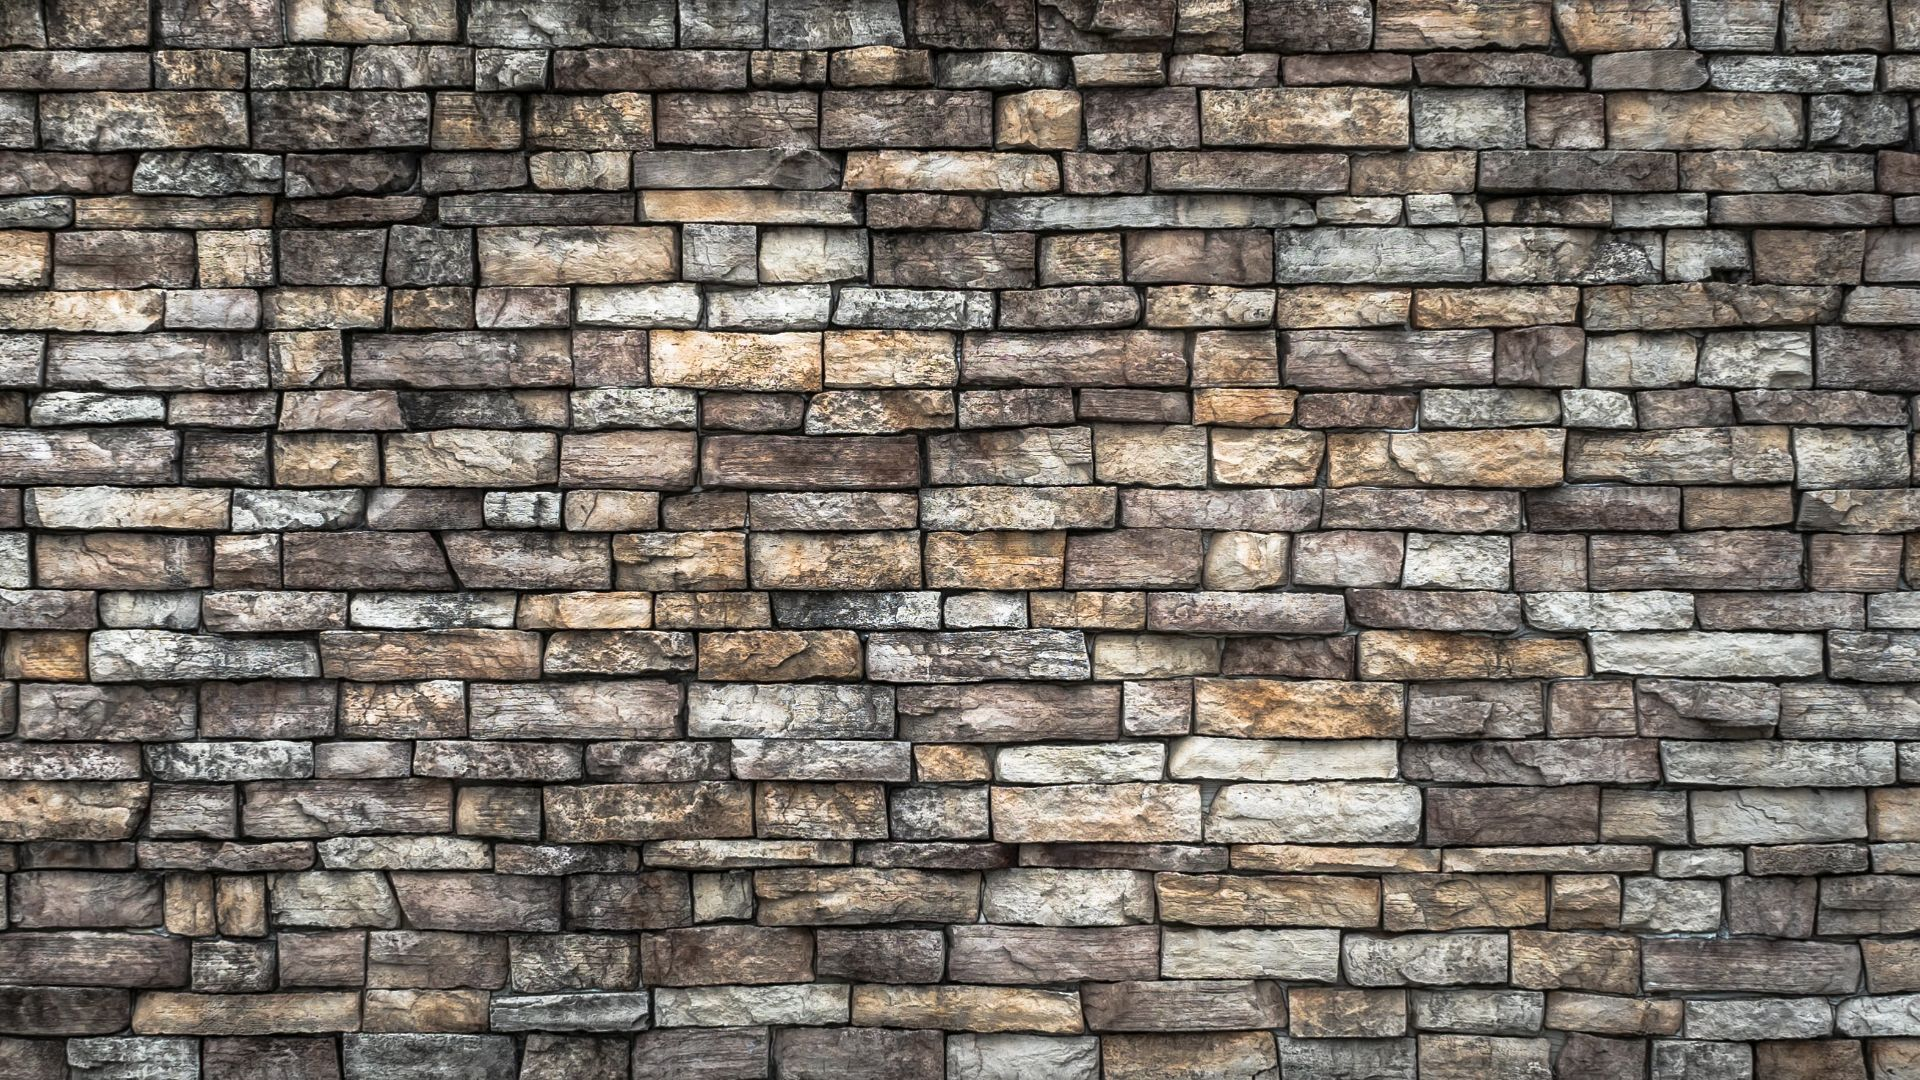 1920x1080px Free Download Hd Wallpaper White And Brown Ceramic Bricks Wall Damme Stone Wall Pattern Wallpa In 2021 Stone Wall Black Brick Wall Brick Texture